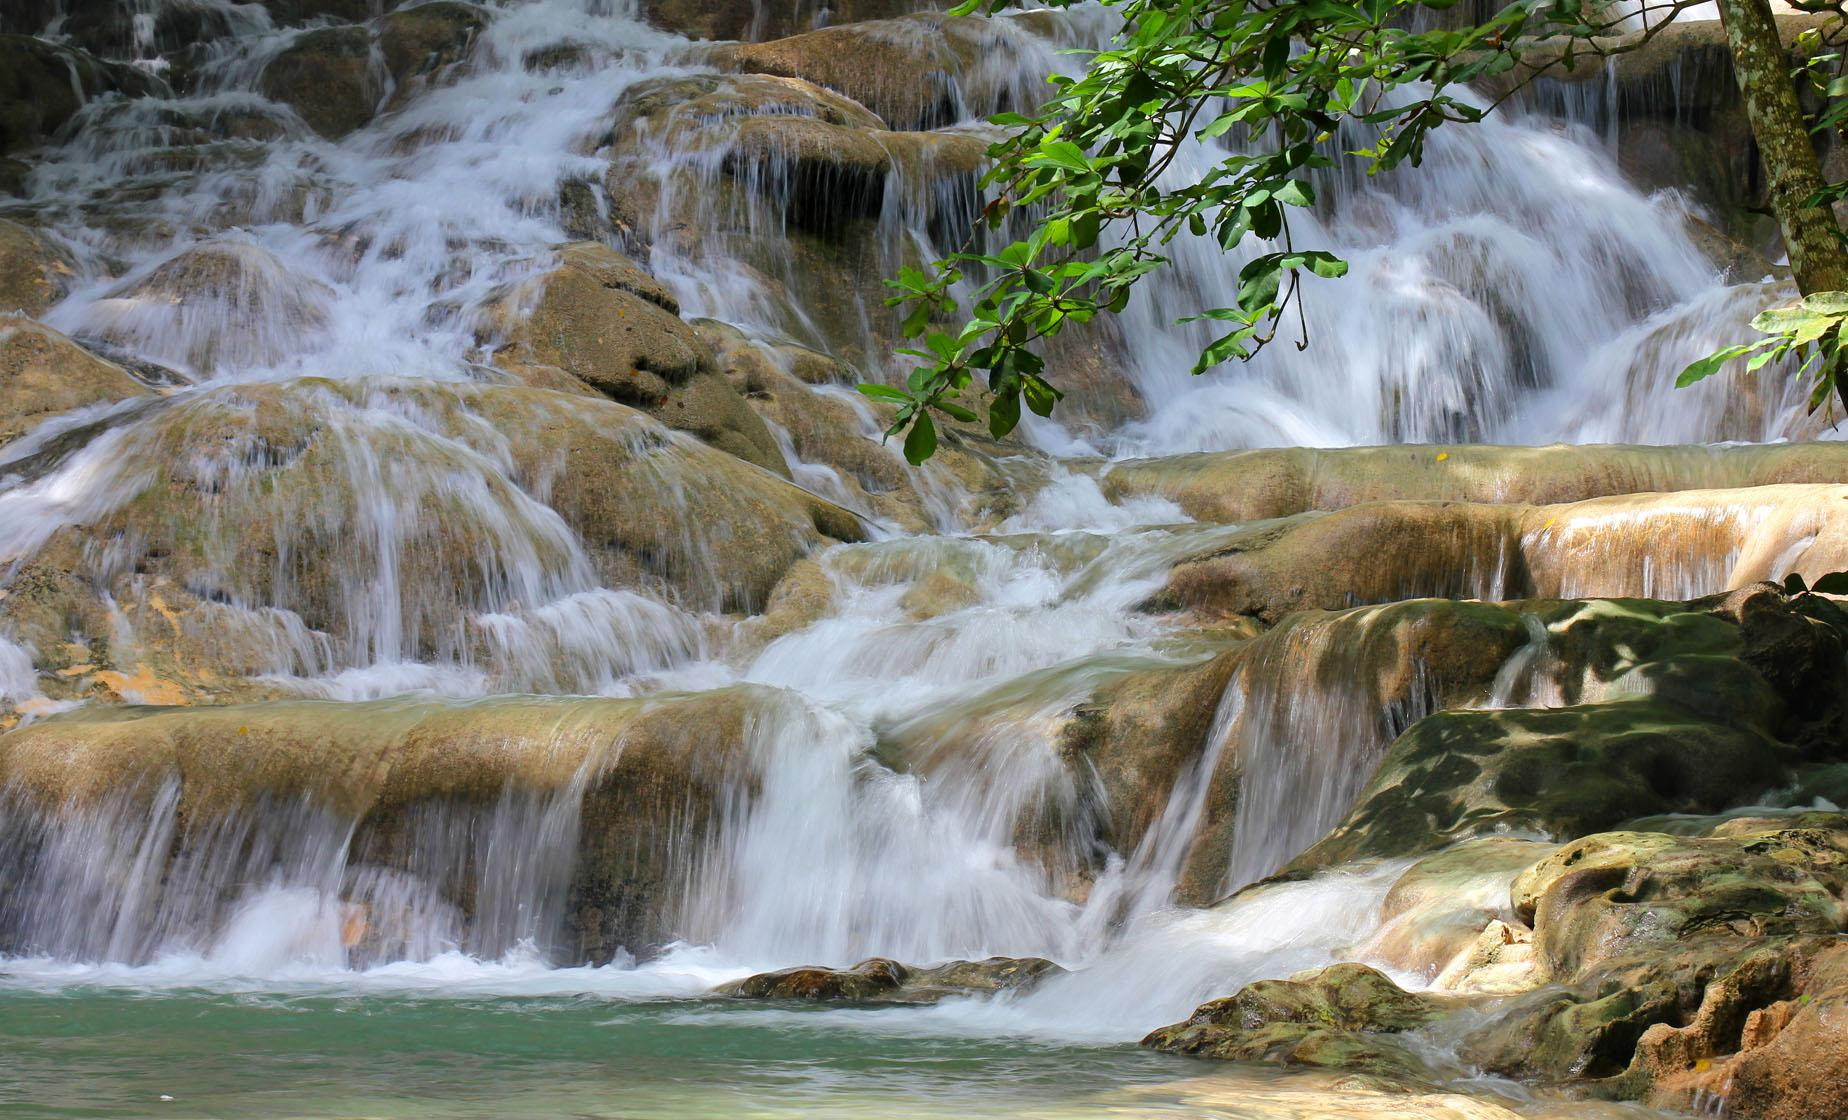 Dunn S River Falls Cruise Excursion From Montego Bay Jamaica